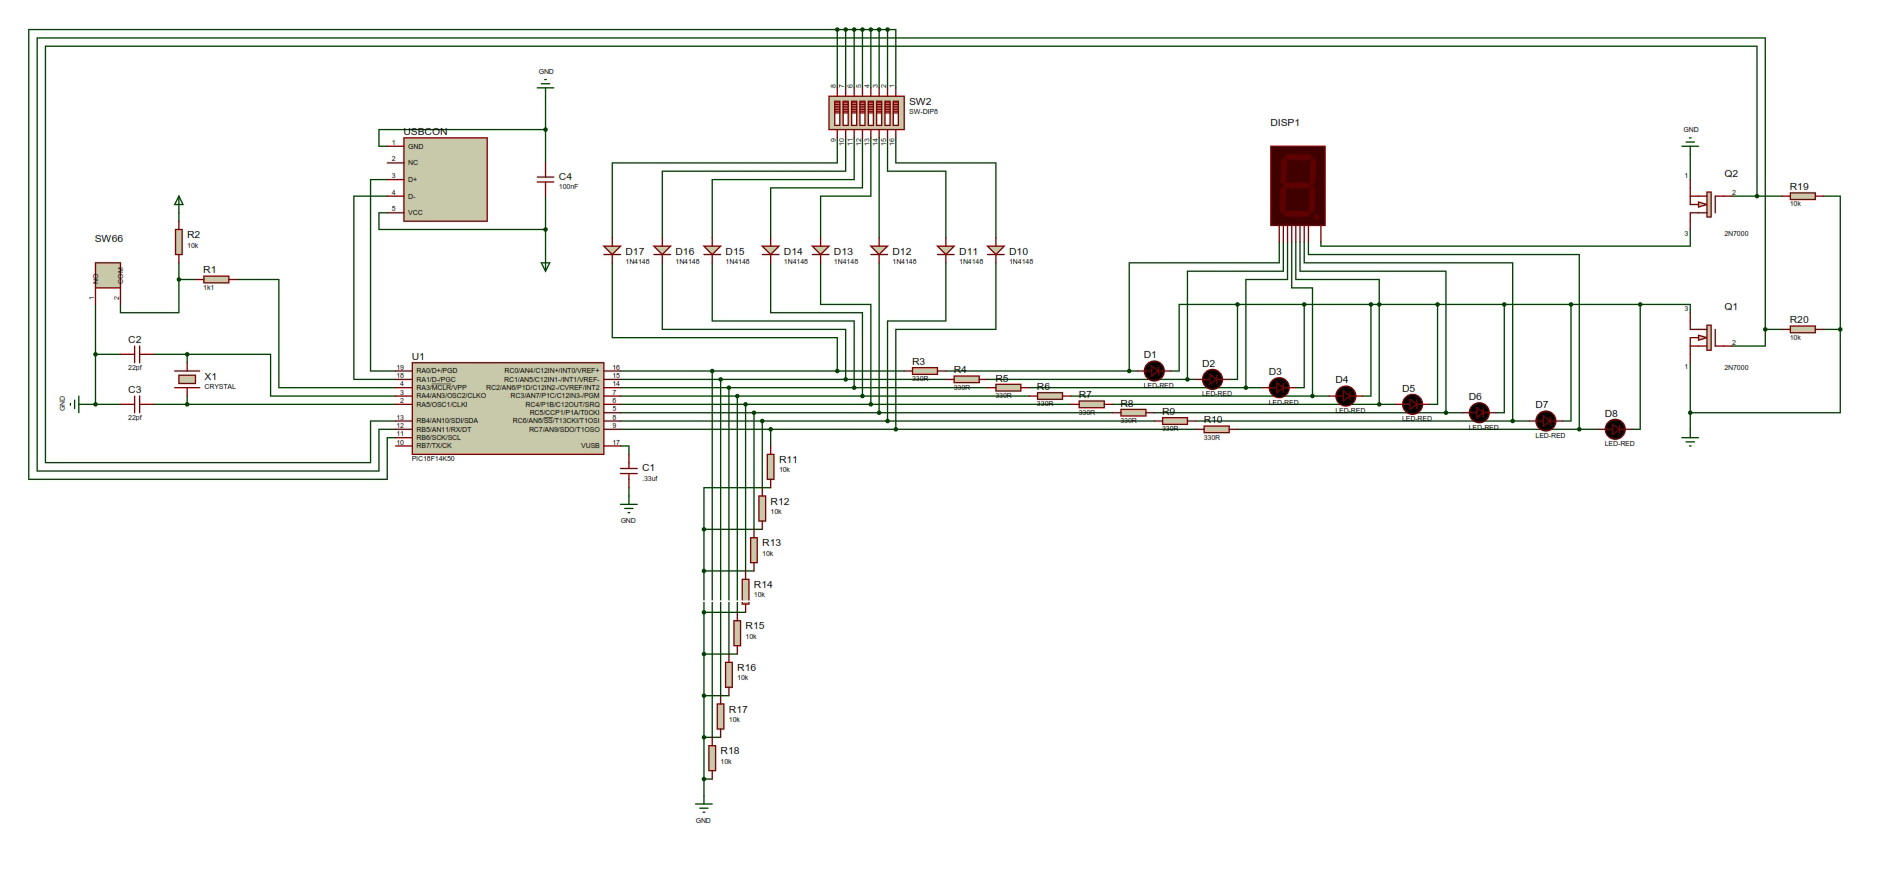 The schematic created in Proteus ISIS.